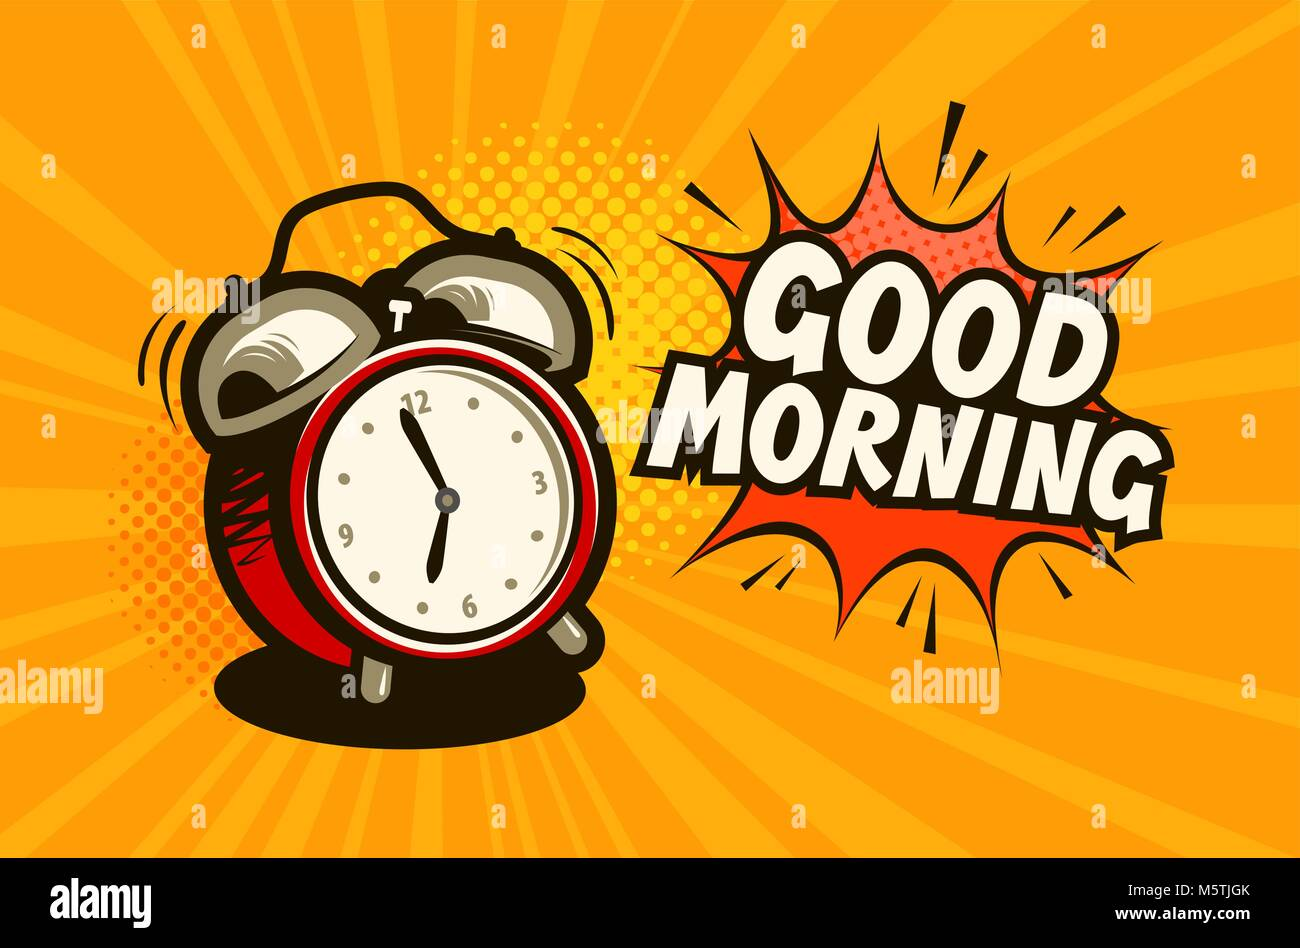 Good Morning Banner Alarm Clock Wake Up Time Concept Cartoon